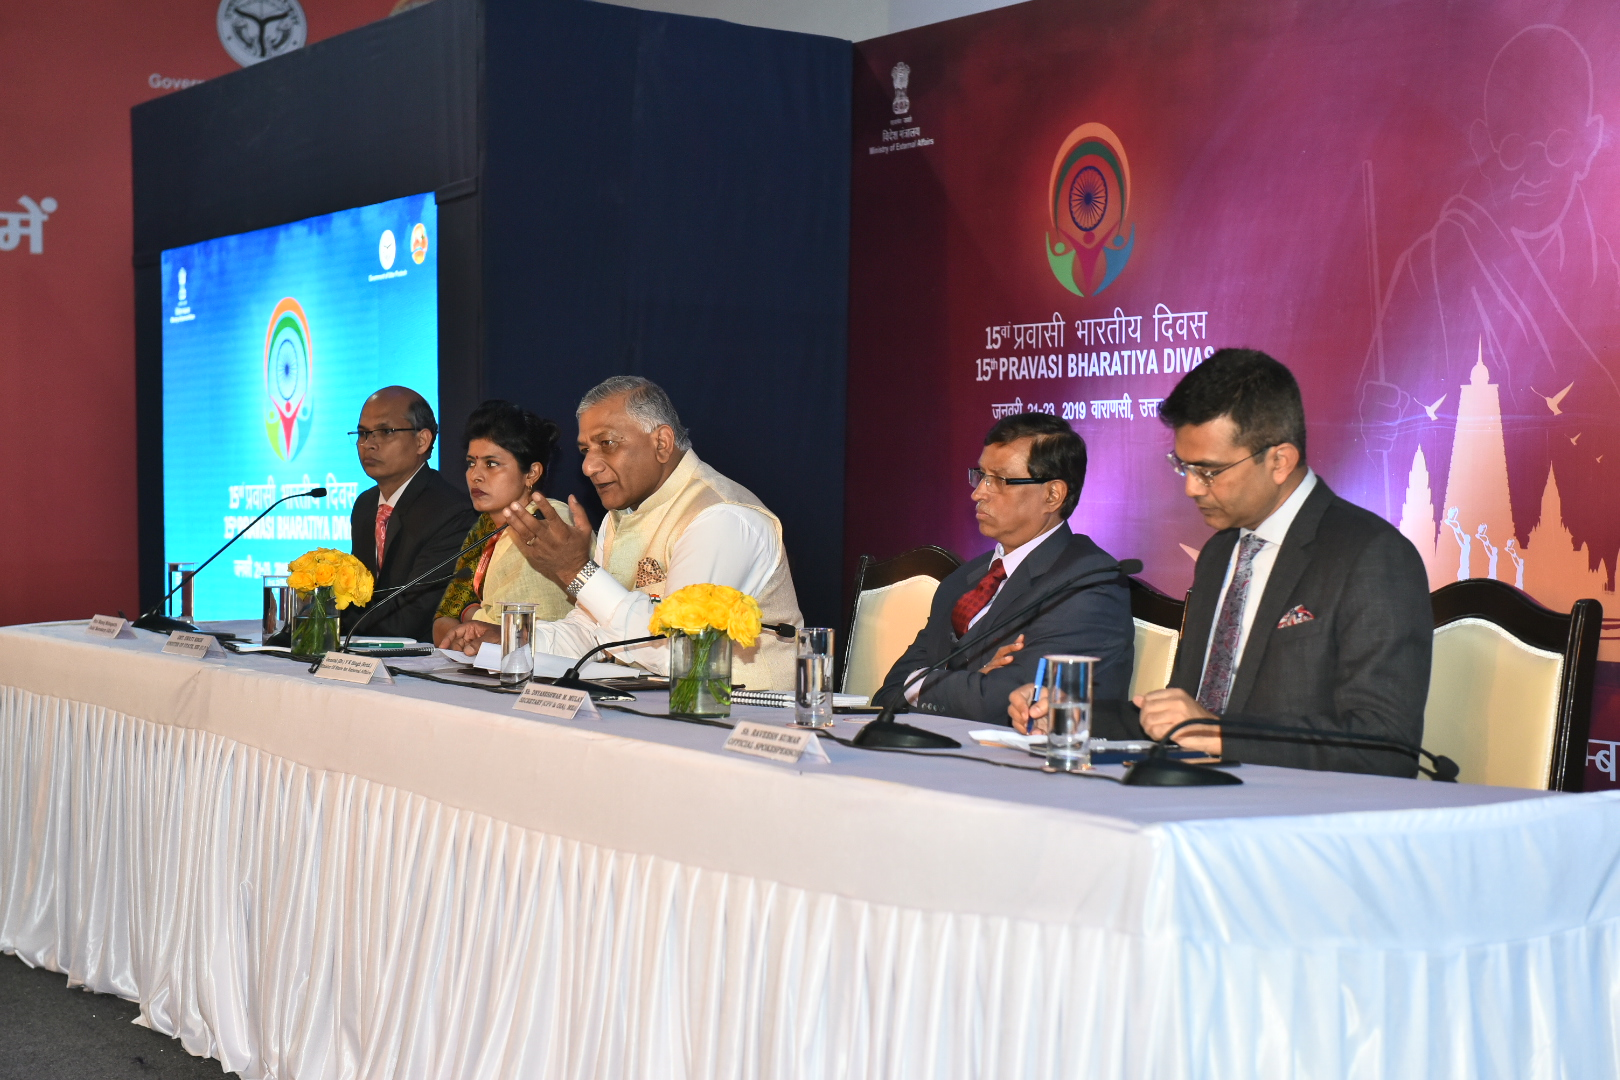 Media briefing by mos ea during pravasi bhartiya divas-2019